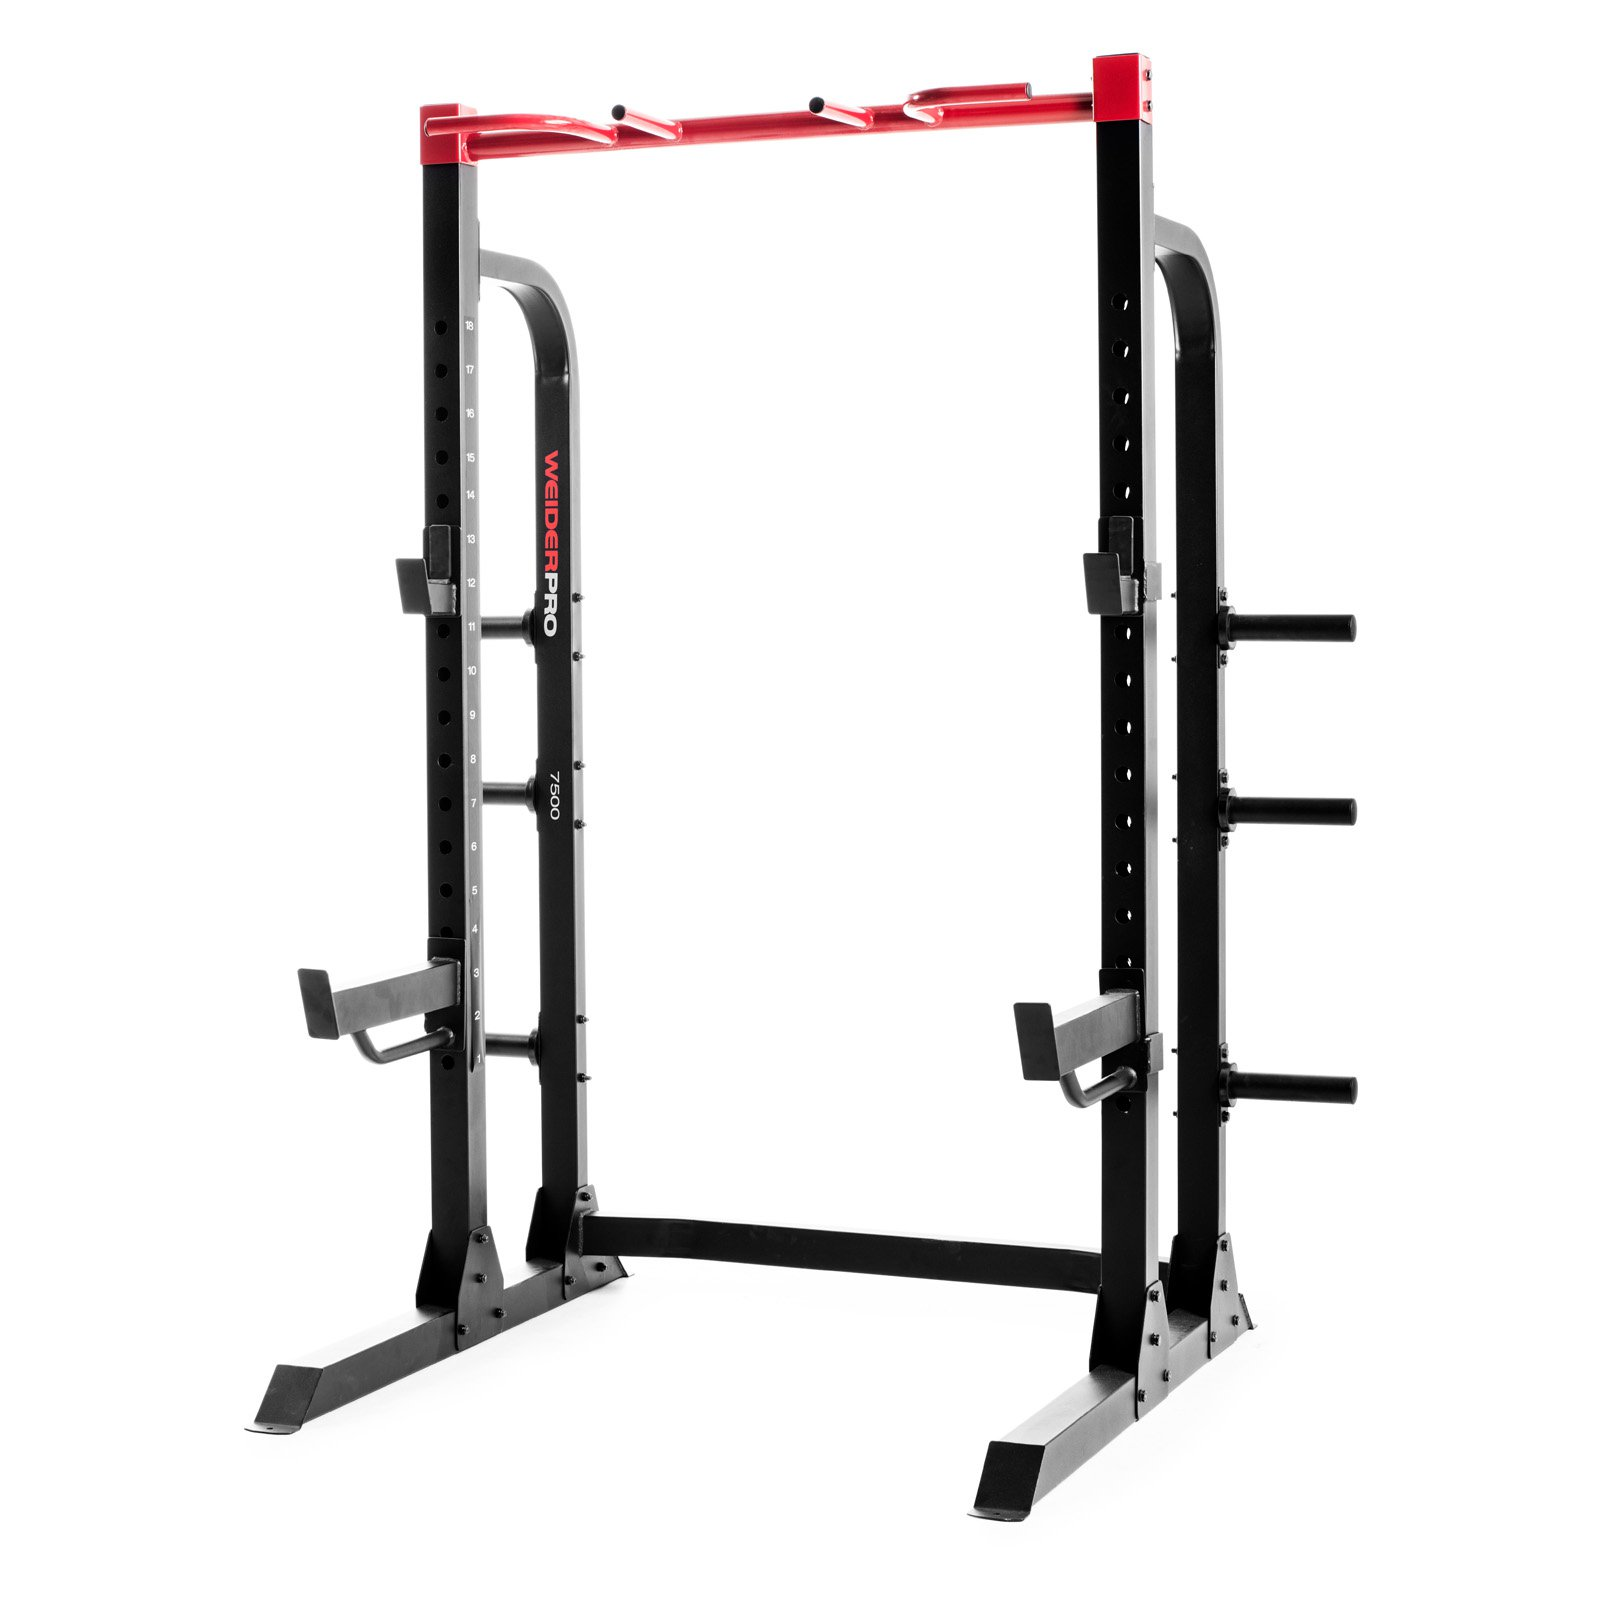 Weider Pro 7500 Power Rack by Icon Health & Fitness Inc.